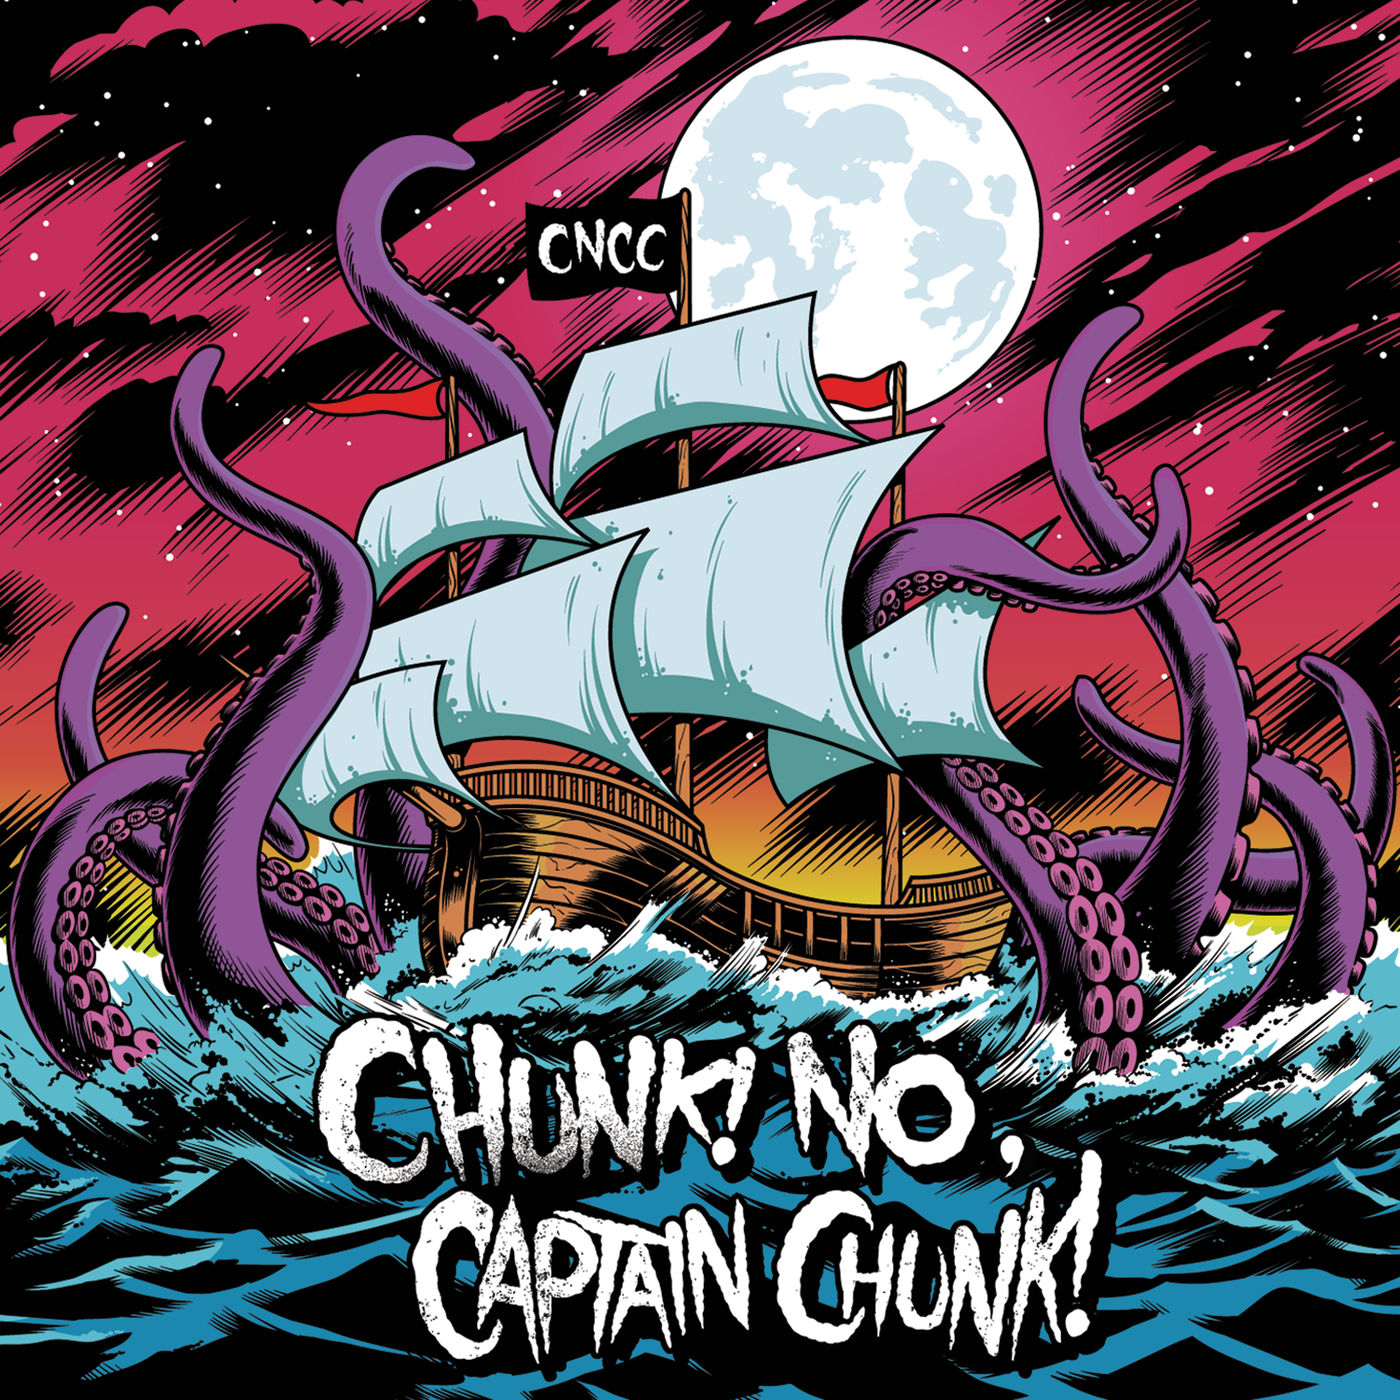 Chunk! No, Captain Chunk! - Something for Nothing (2011)